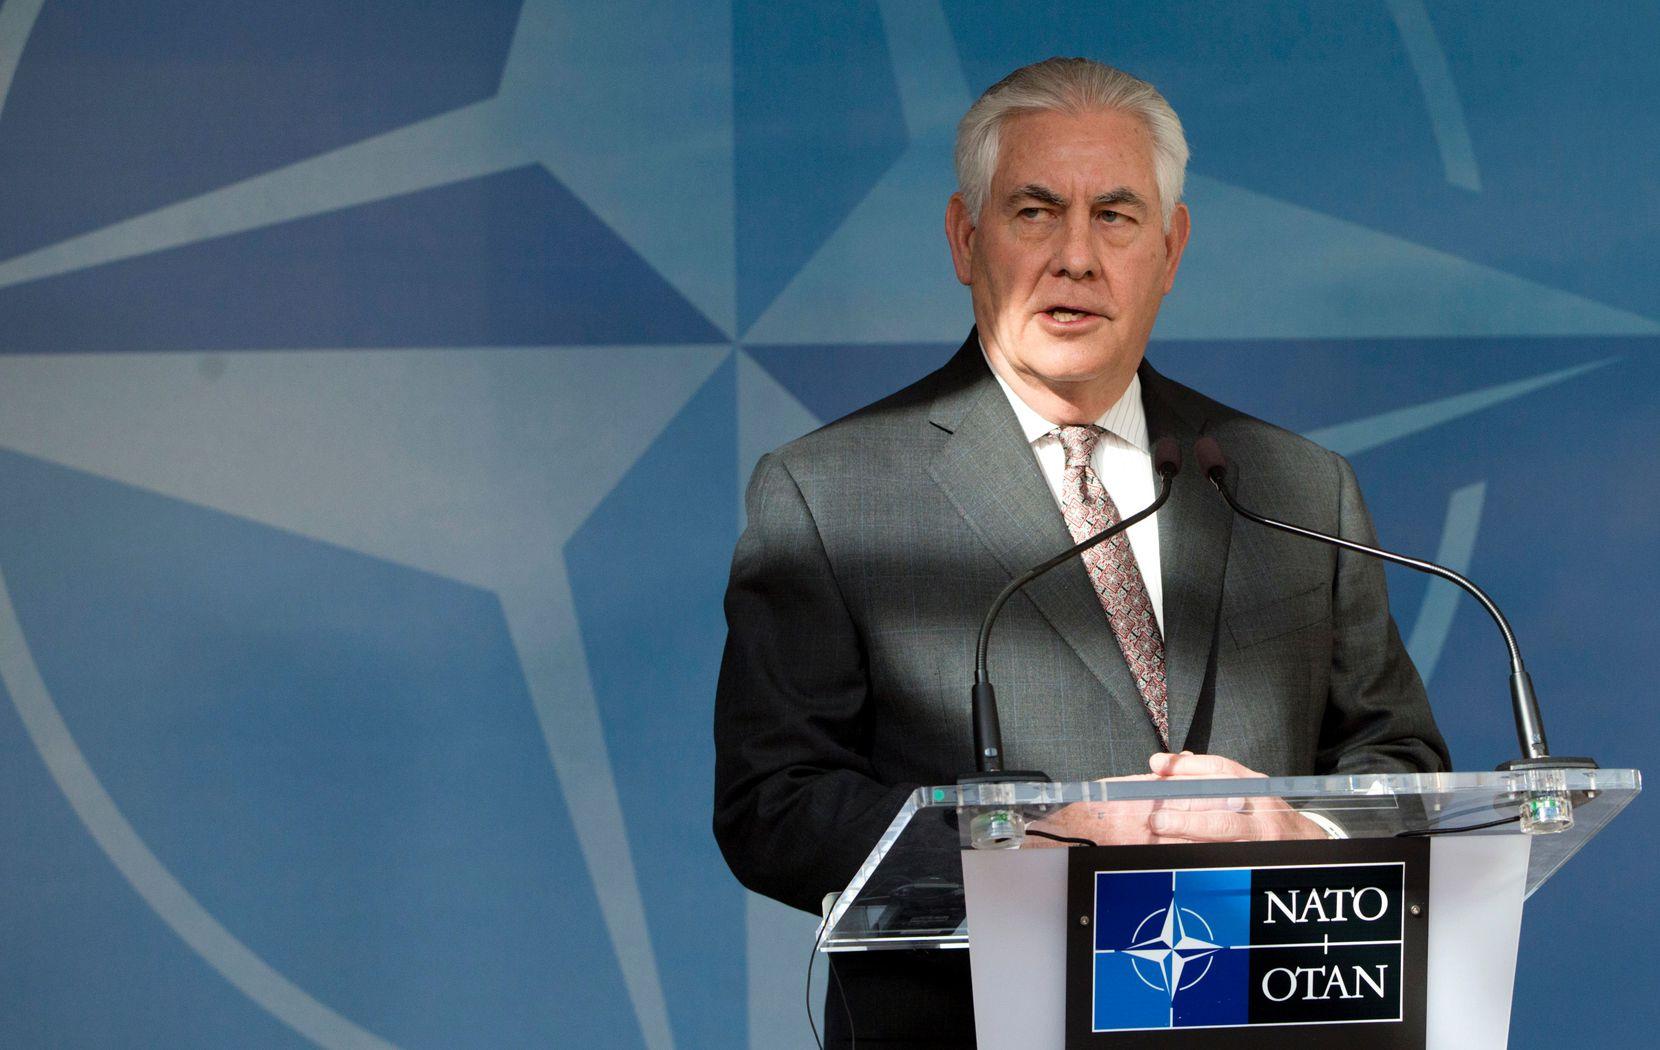 U.S. Secretary of State Rex Tillerson addresses the media within a North Atlantic Council (NAC) meeting at the level of Foreign Ministers, at NATO headquarters in Brussels on March 31, 2017. Tillerson headed to Brussels on March 31 to push President Donald Trump's demand for NATO allies to boost defense spending.